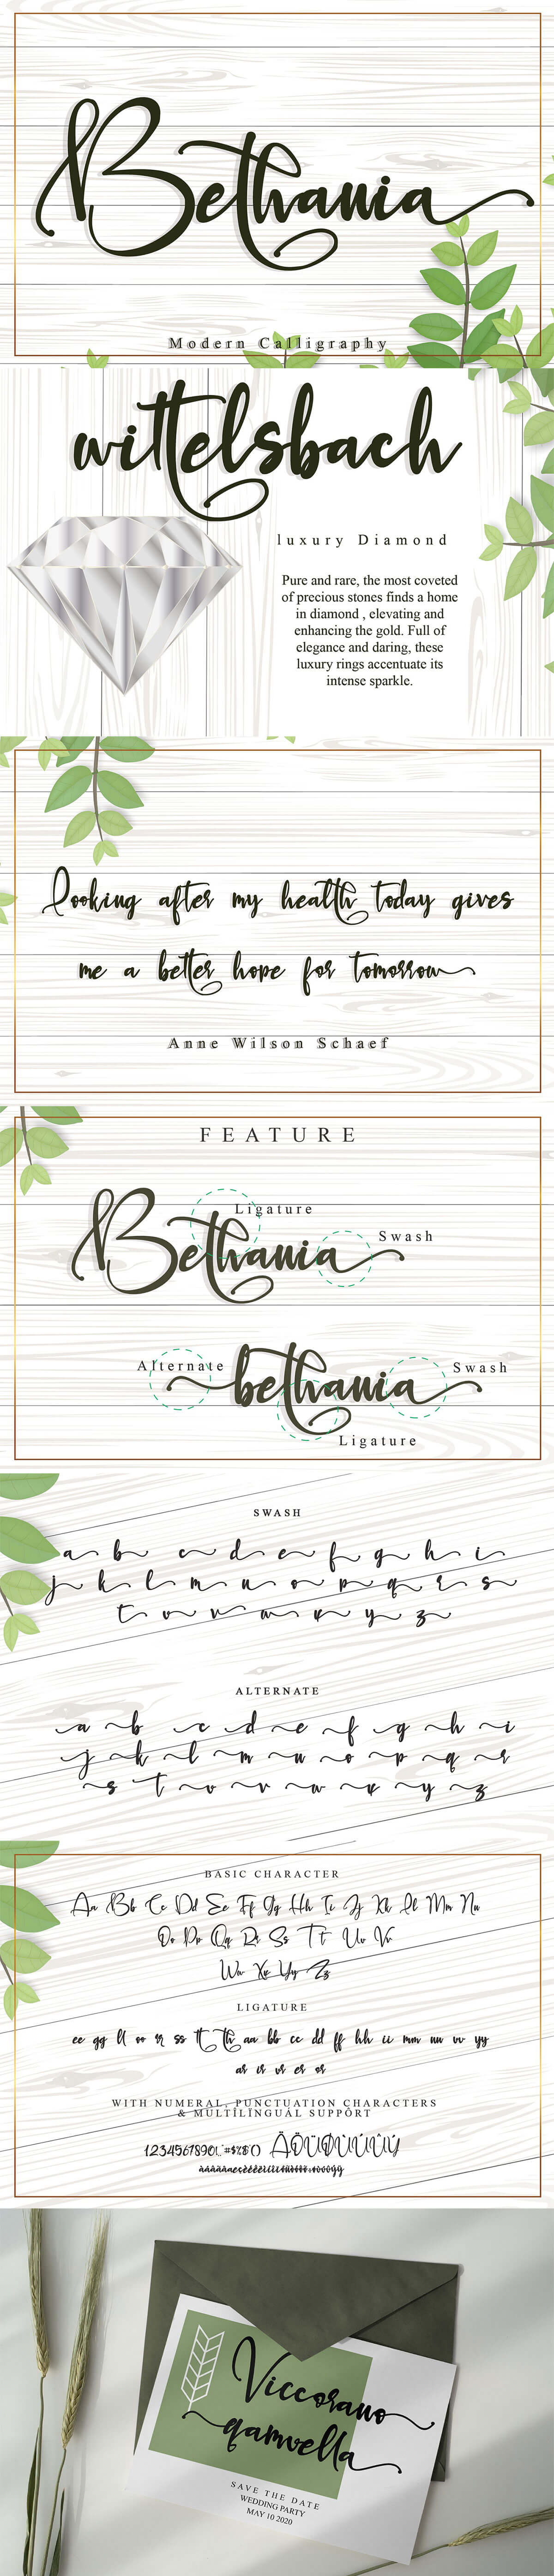 Free Bethania Calligraphy Font